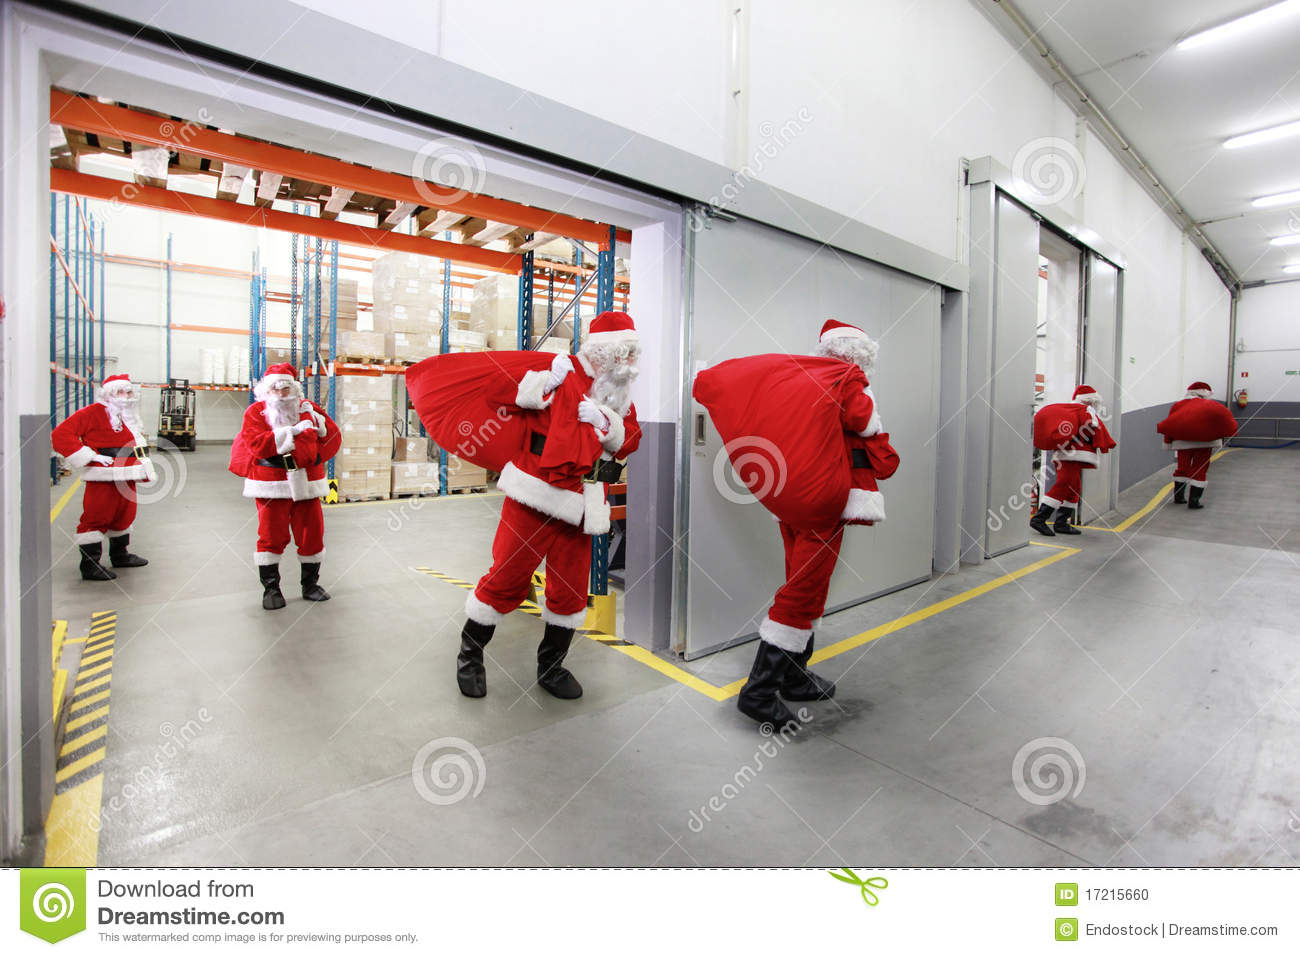 Santa clauses leaving a gift distribution center